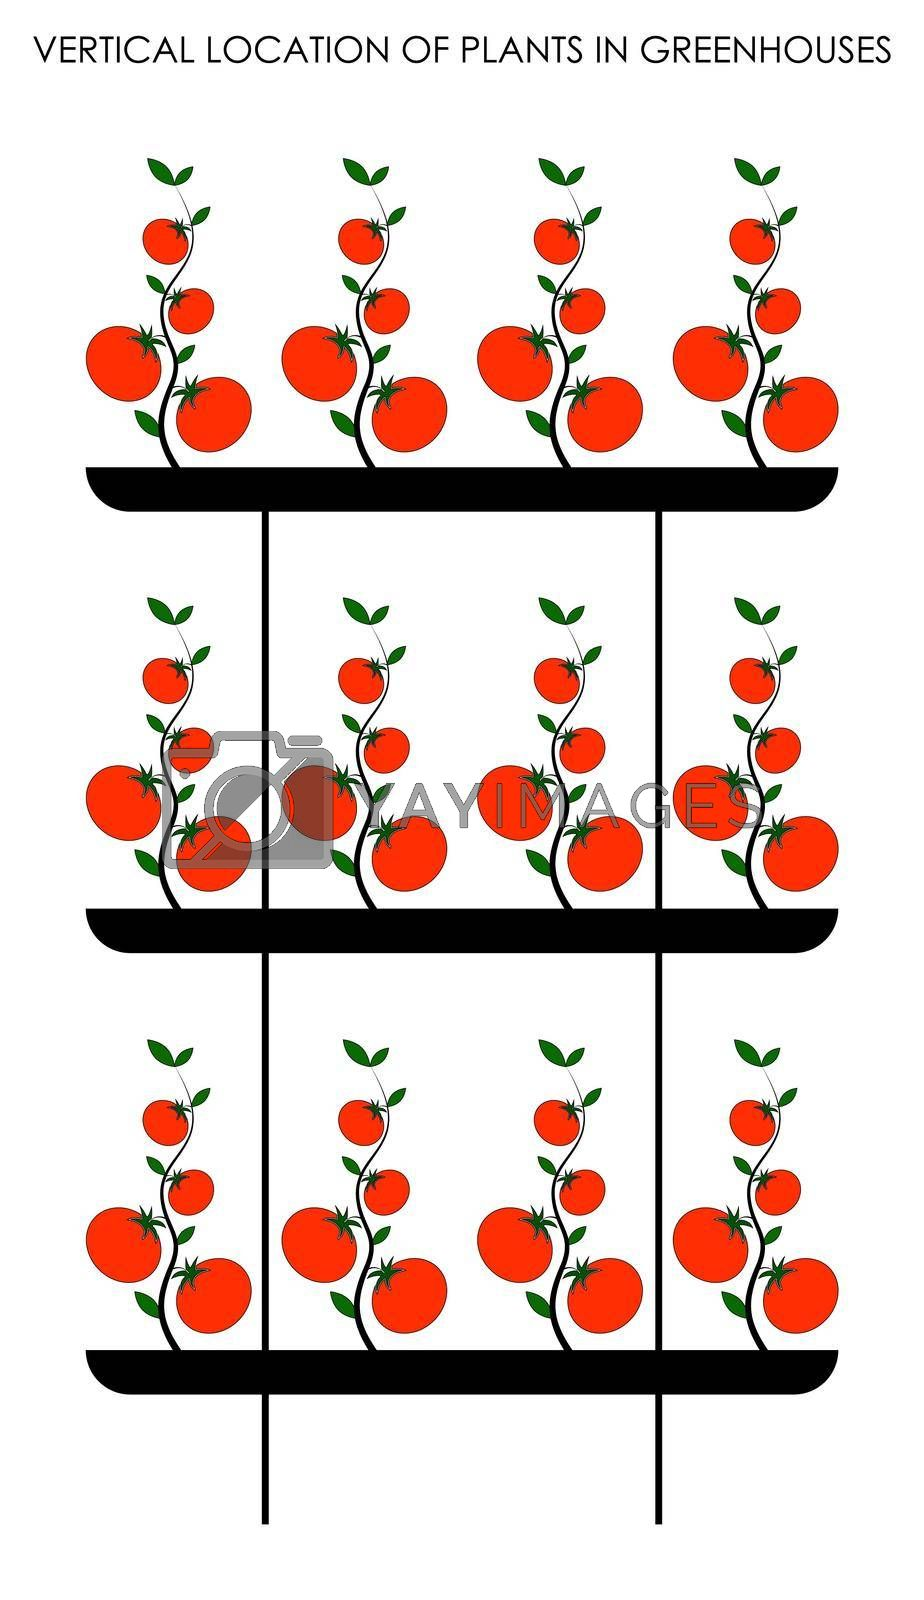 vertical decomposition of plants in greenhouses, growing tomatoes vertically. Colored isolated vector